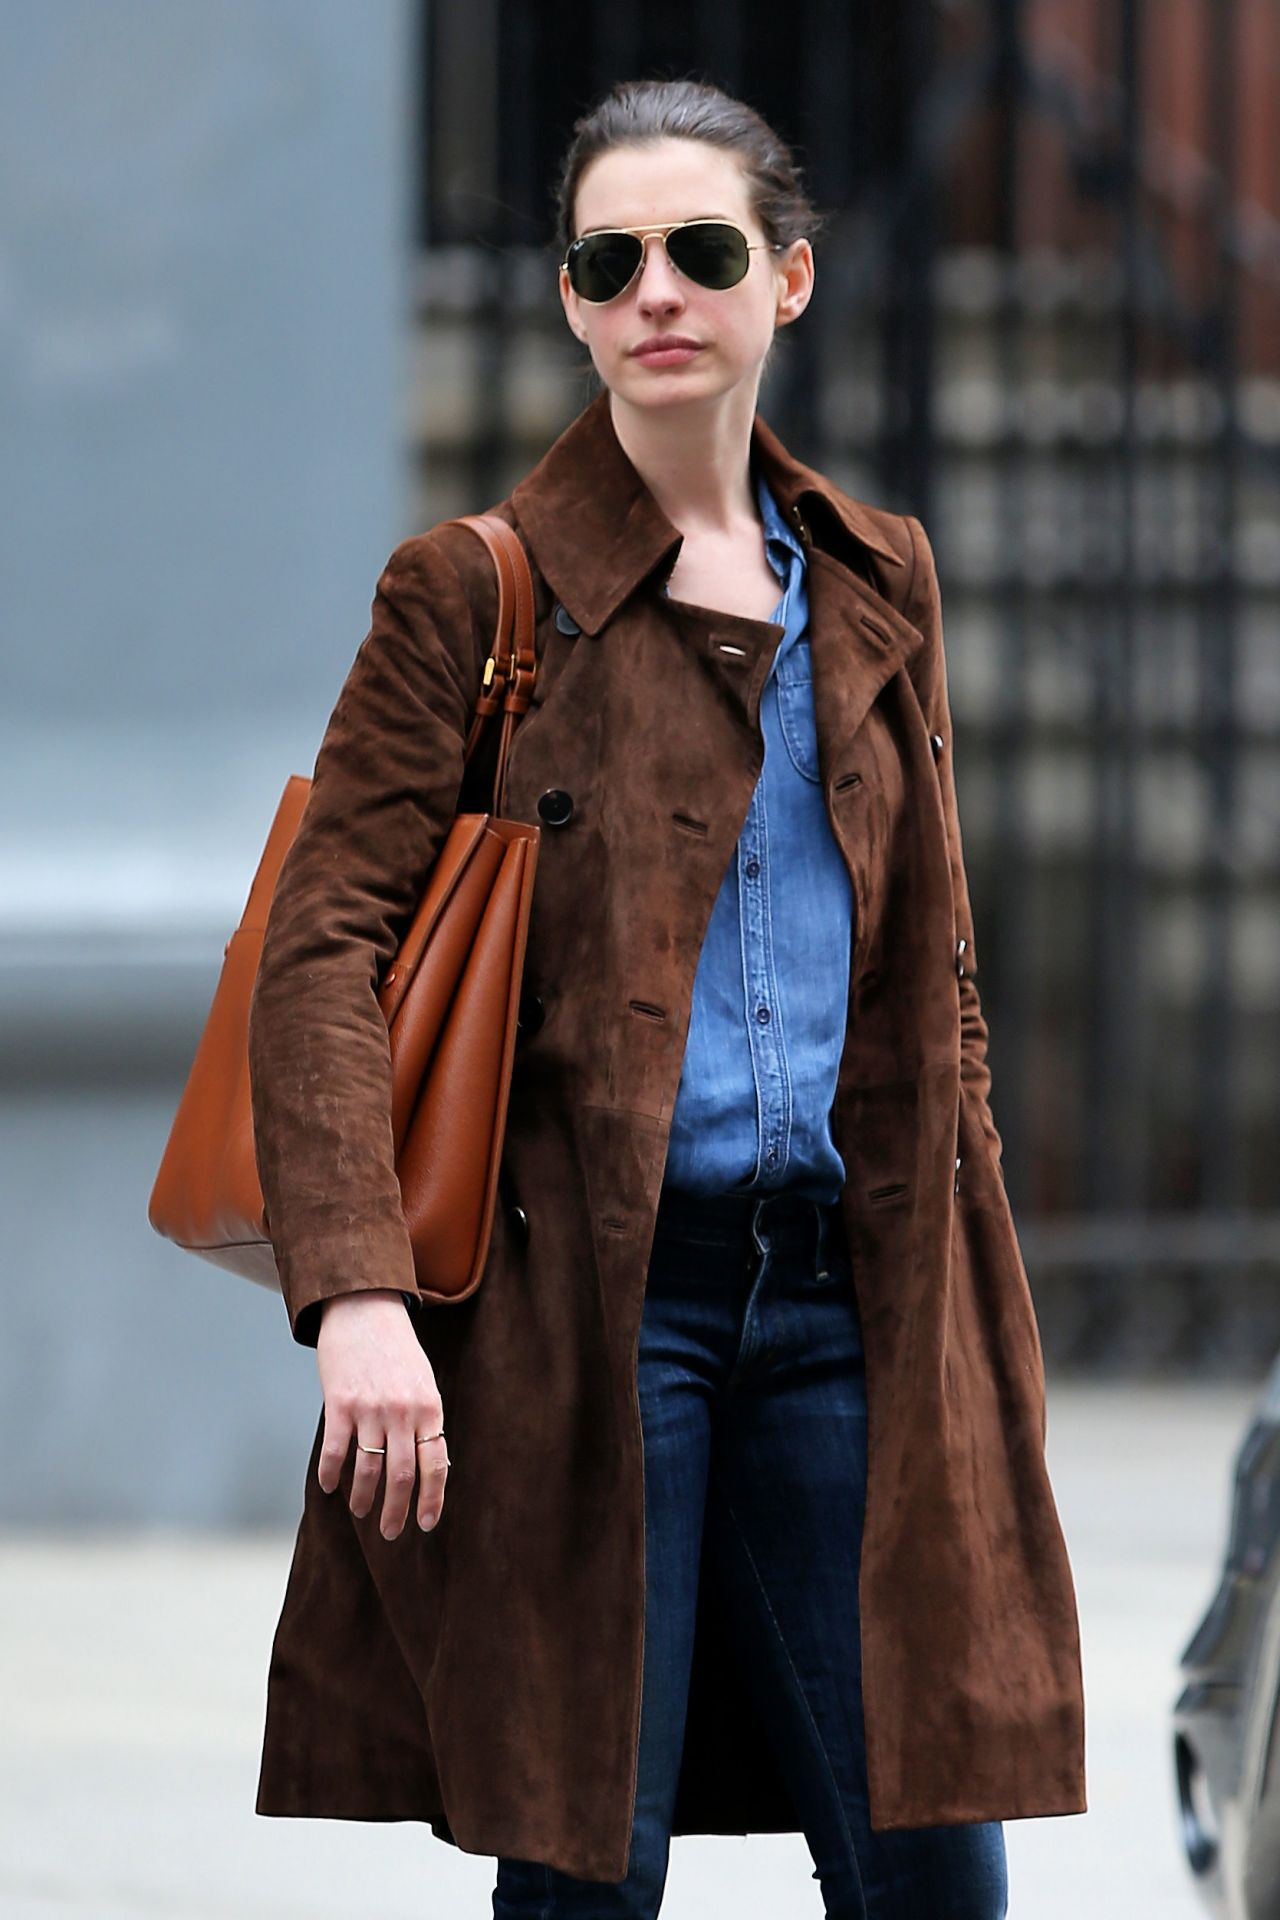 anne hathaway casual style - photo #6